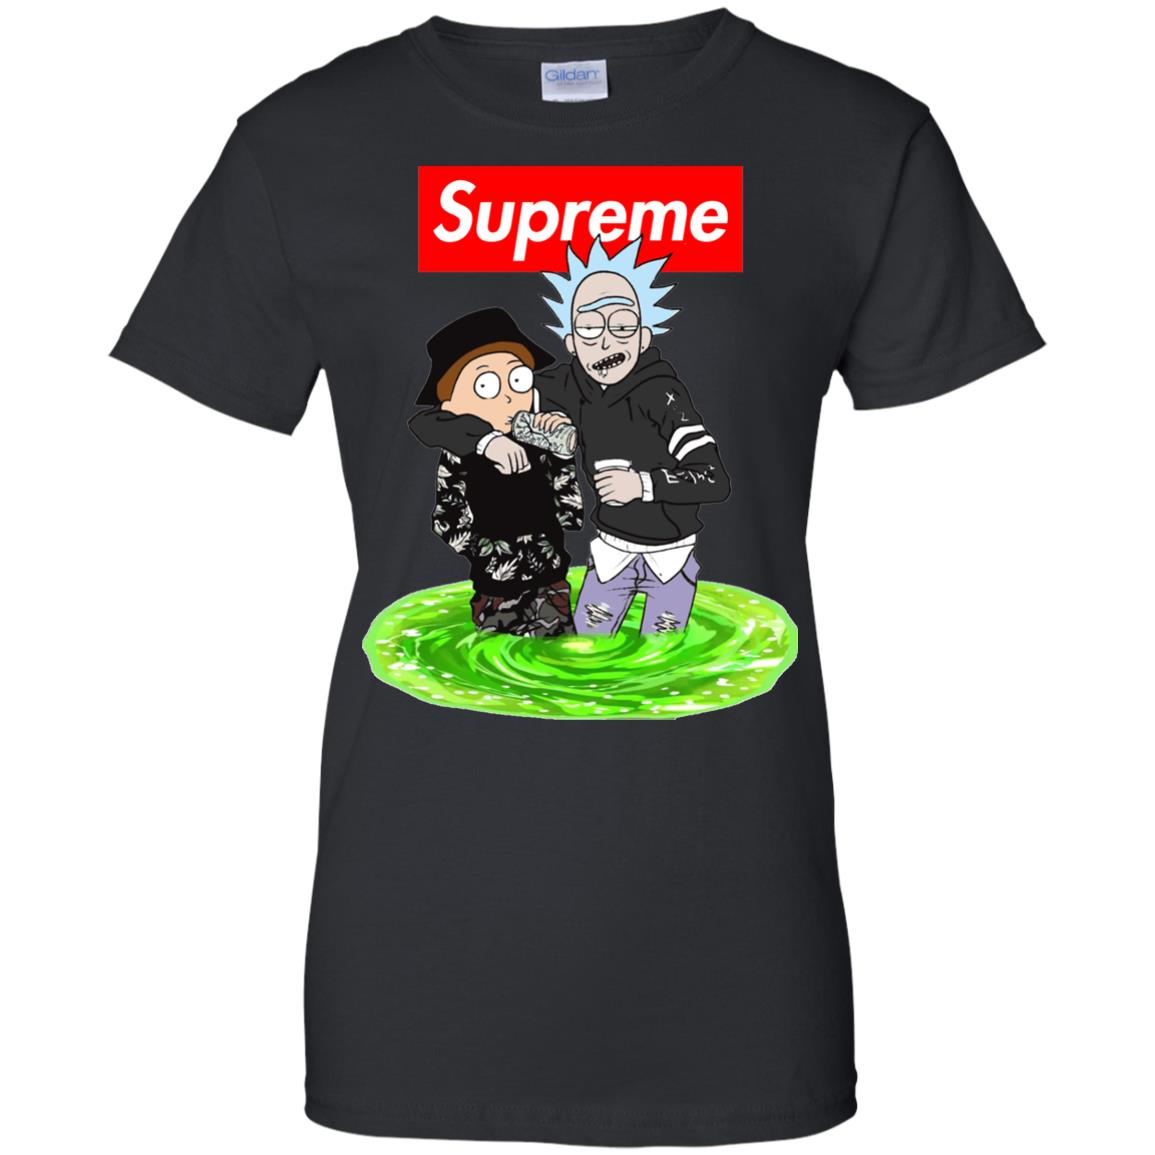 image 2748 - Supreme style Rick and Morty shirt & sweater